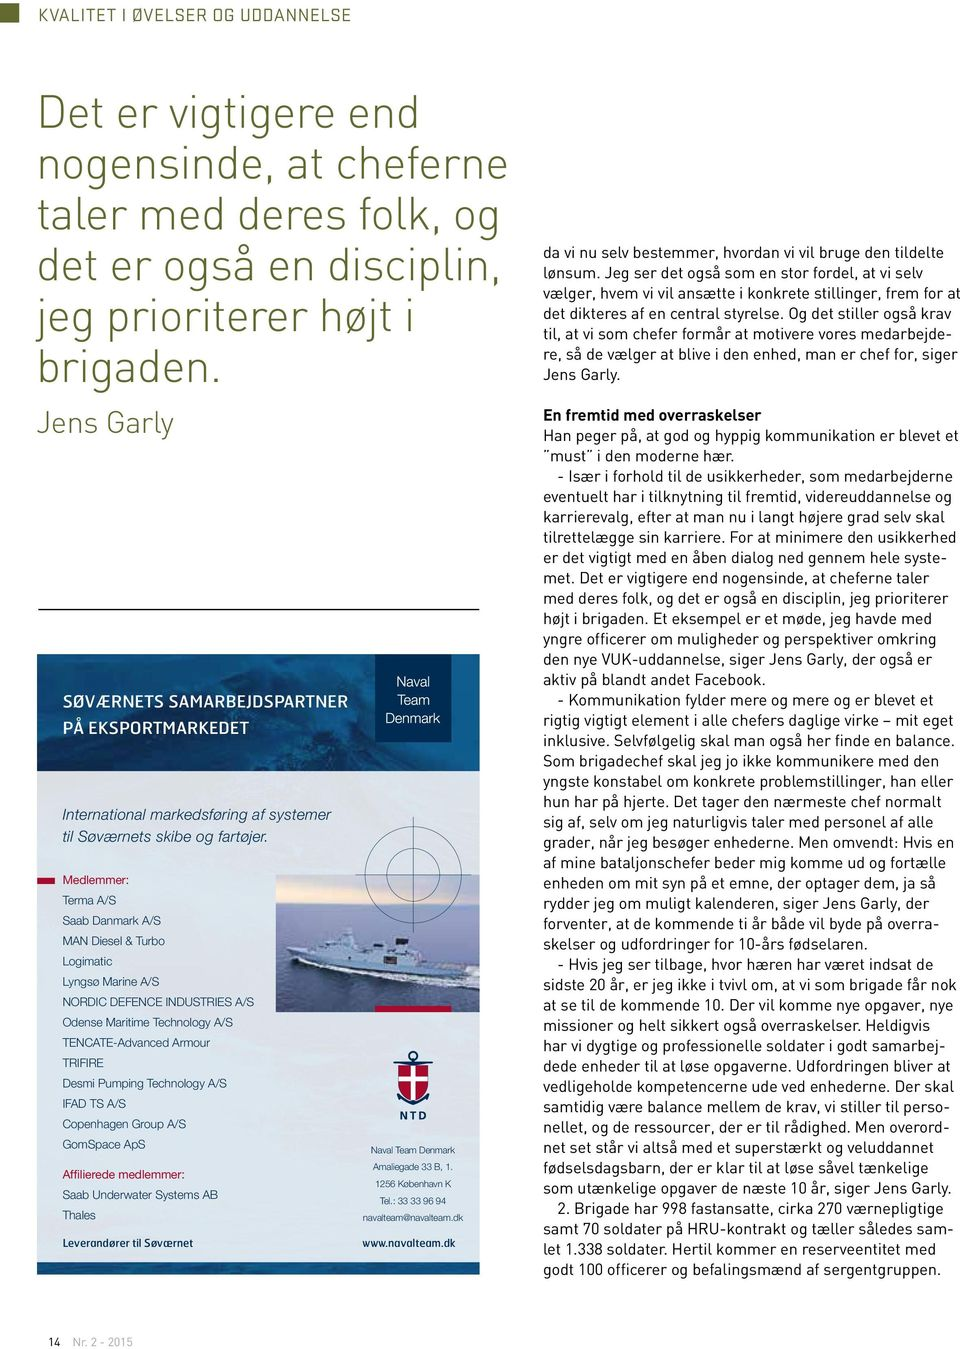 Medlemmer: Terma A/S Saab Danmark A/S MAN Diesel & Turbo Logimatic Lyngsø Marine A/S NORDIC DEFENCE INDUSTRIES A/S Odense Maritime Technology A/S TENCATE-Advanced Armour TRIFIRE Desmi Pumping